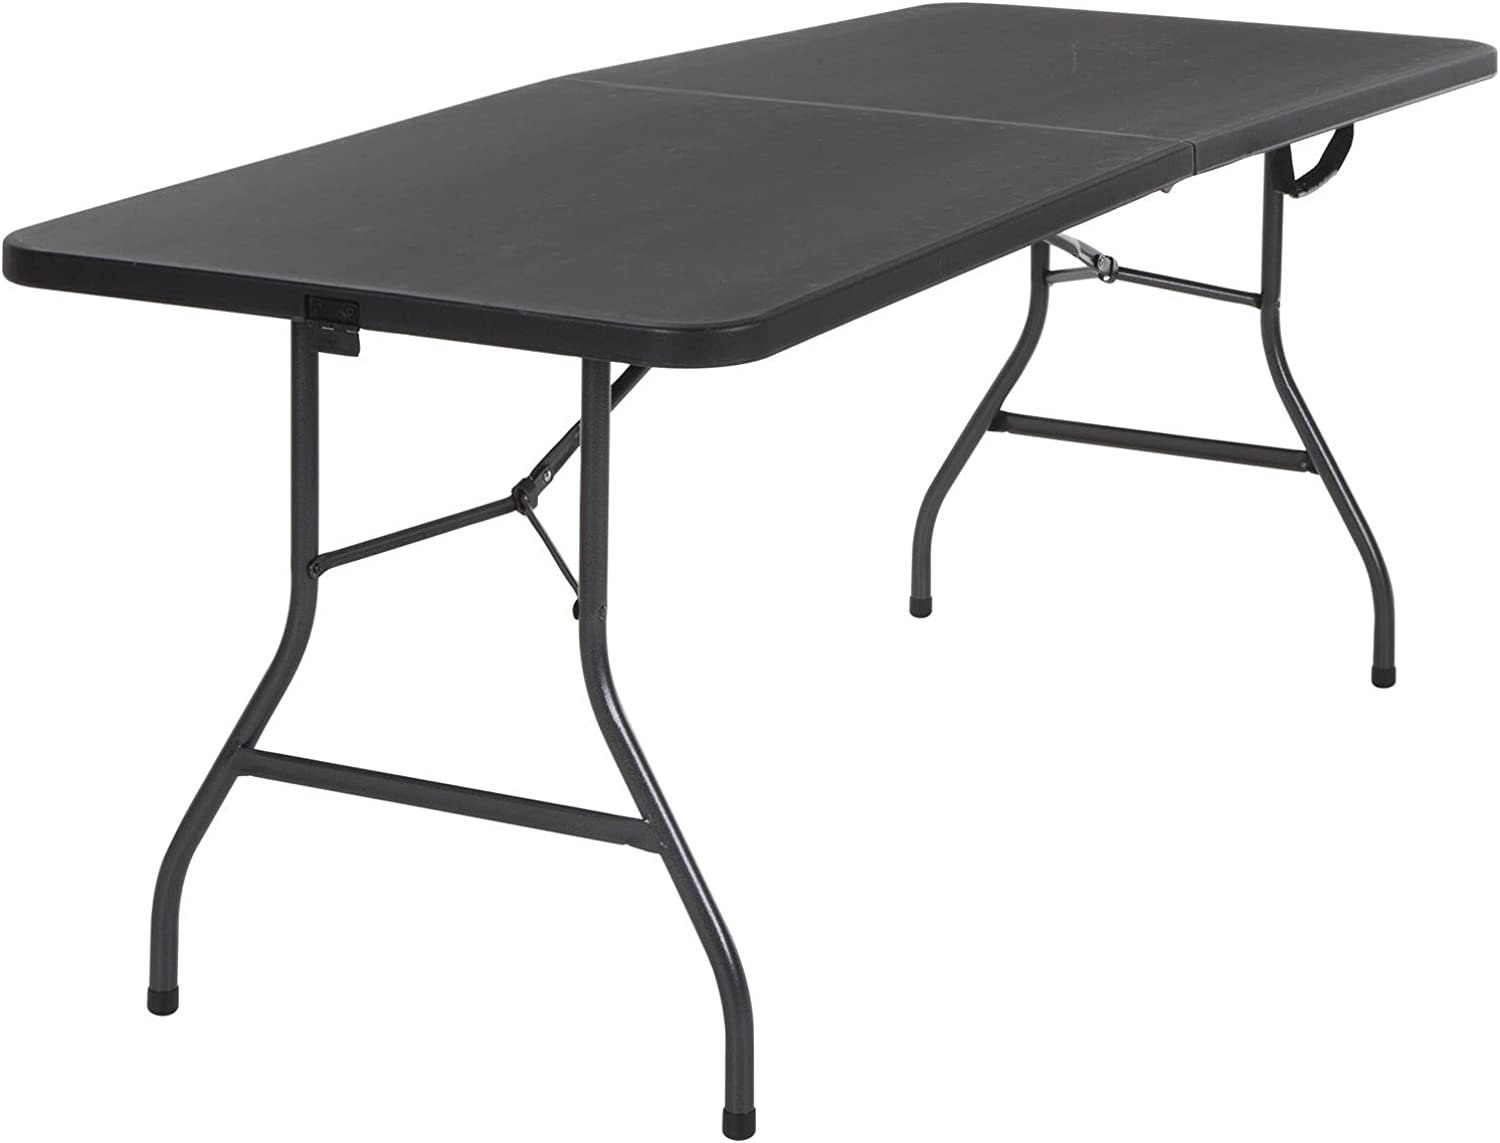 Cosco 14678BLK1 Deluxe 6 Foot x 30 inch Half Blow Molded Folding Table, Black, 72  (Rectangle)